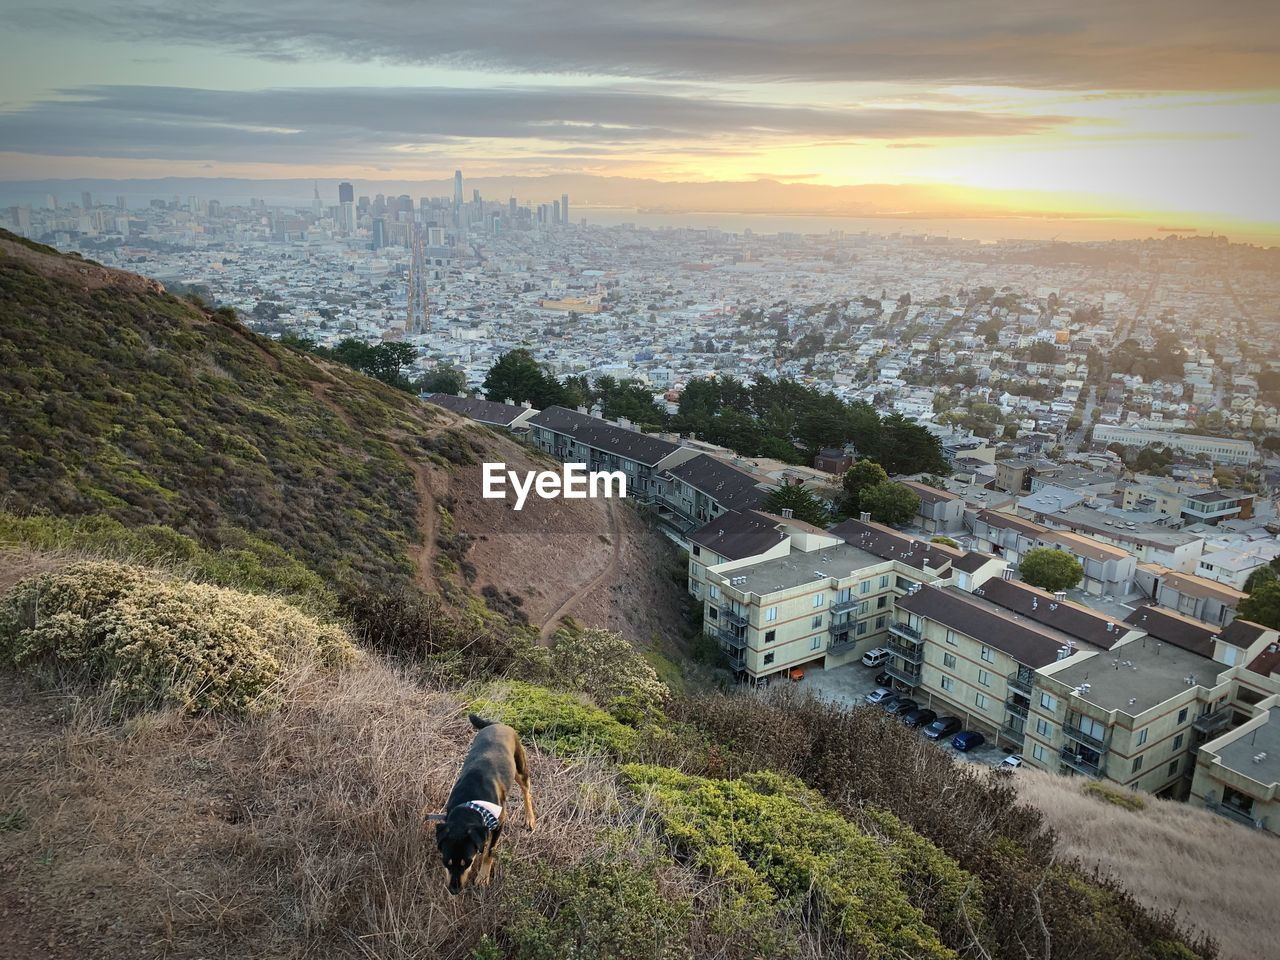 Dog on mountain against cityscape during sunset